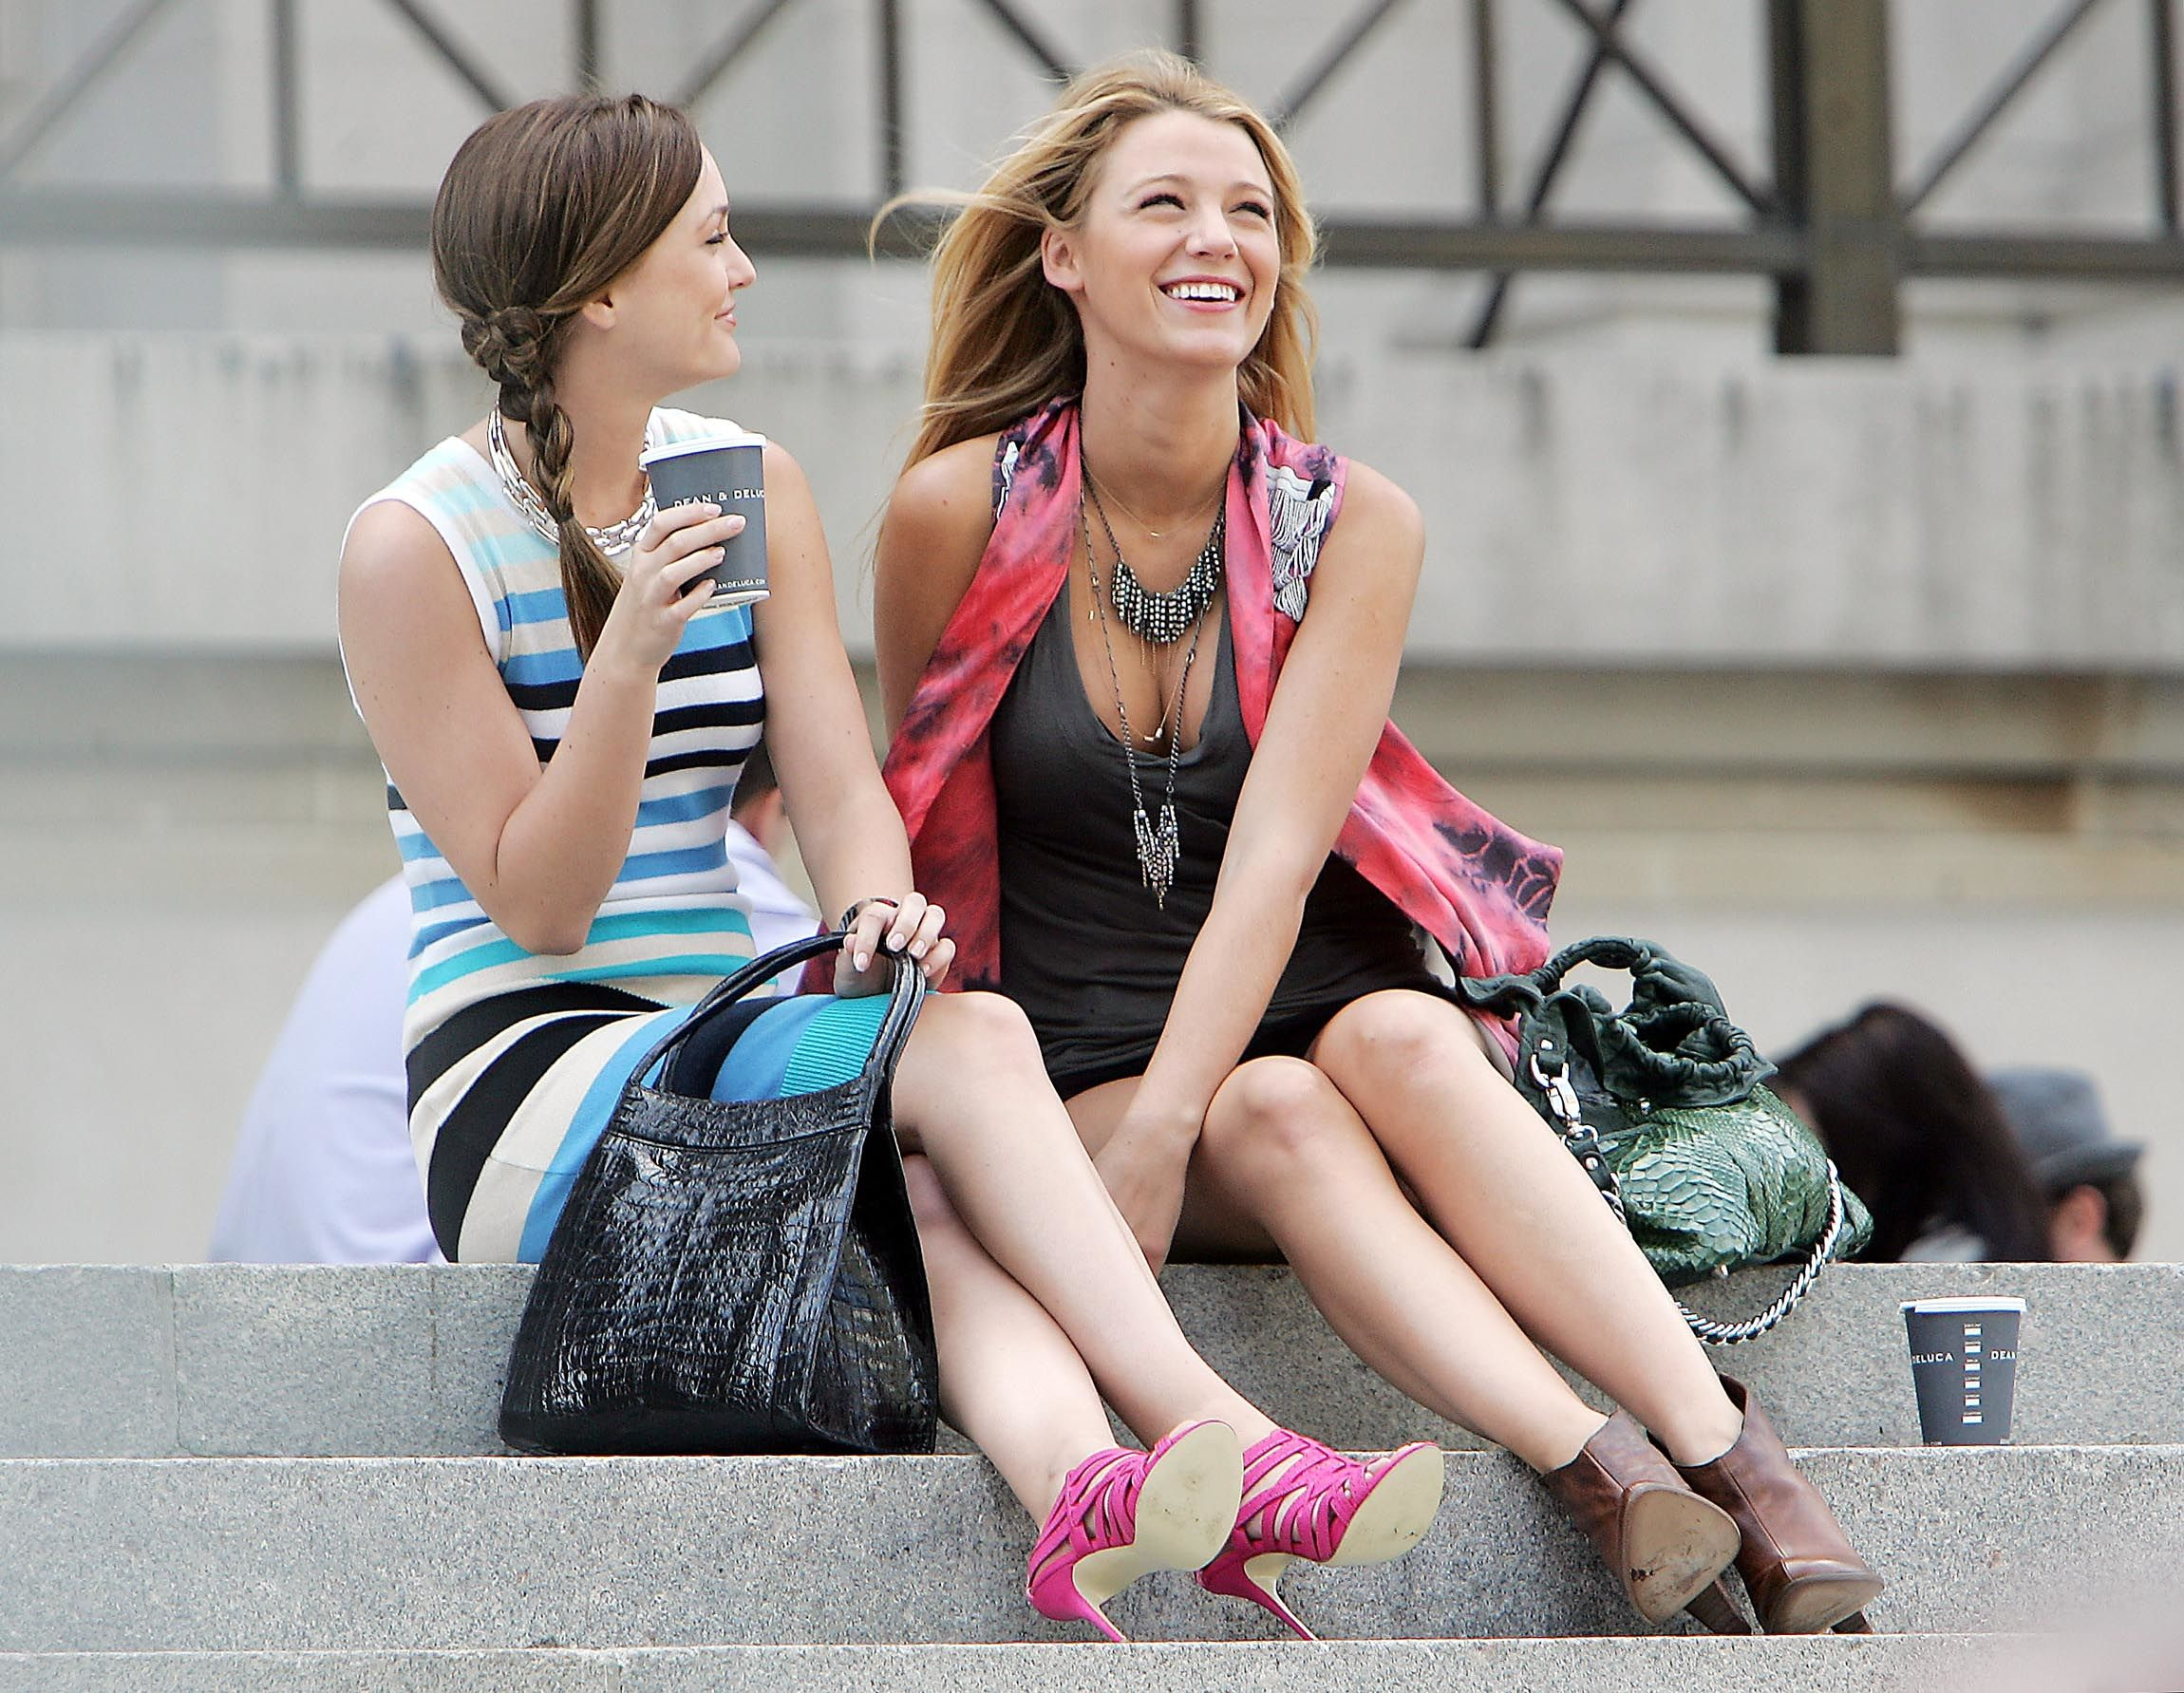 Gossip Girl Facts - Juicy, Behind-the